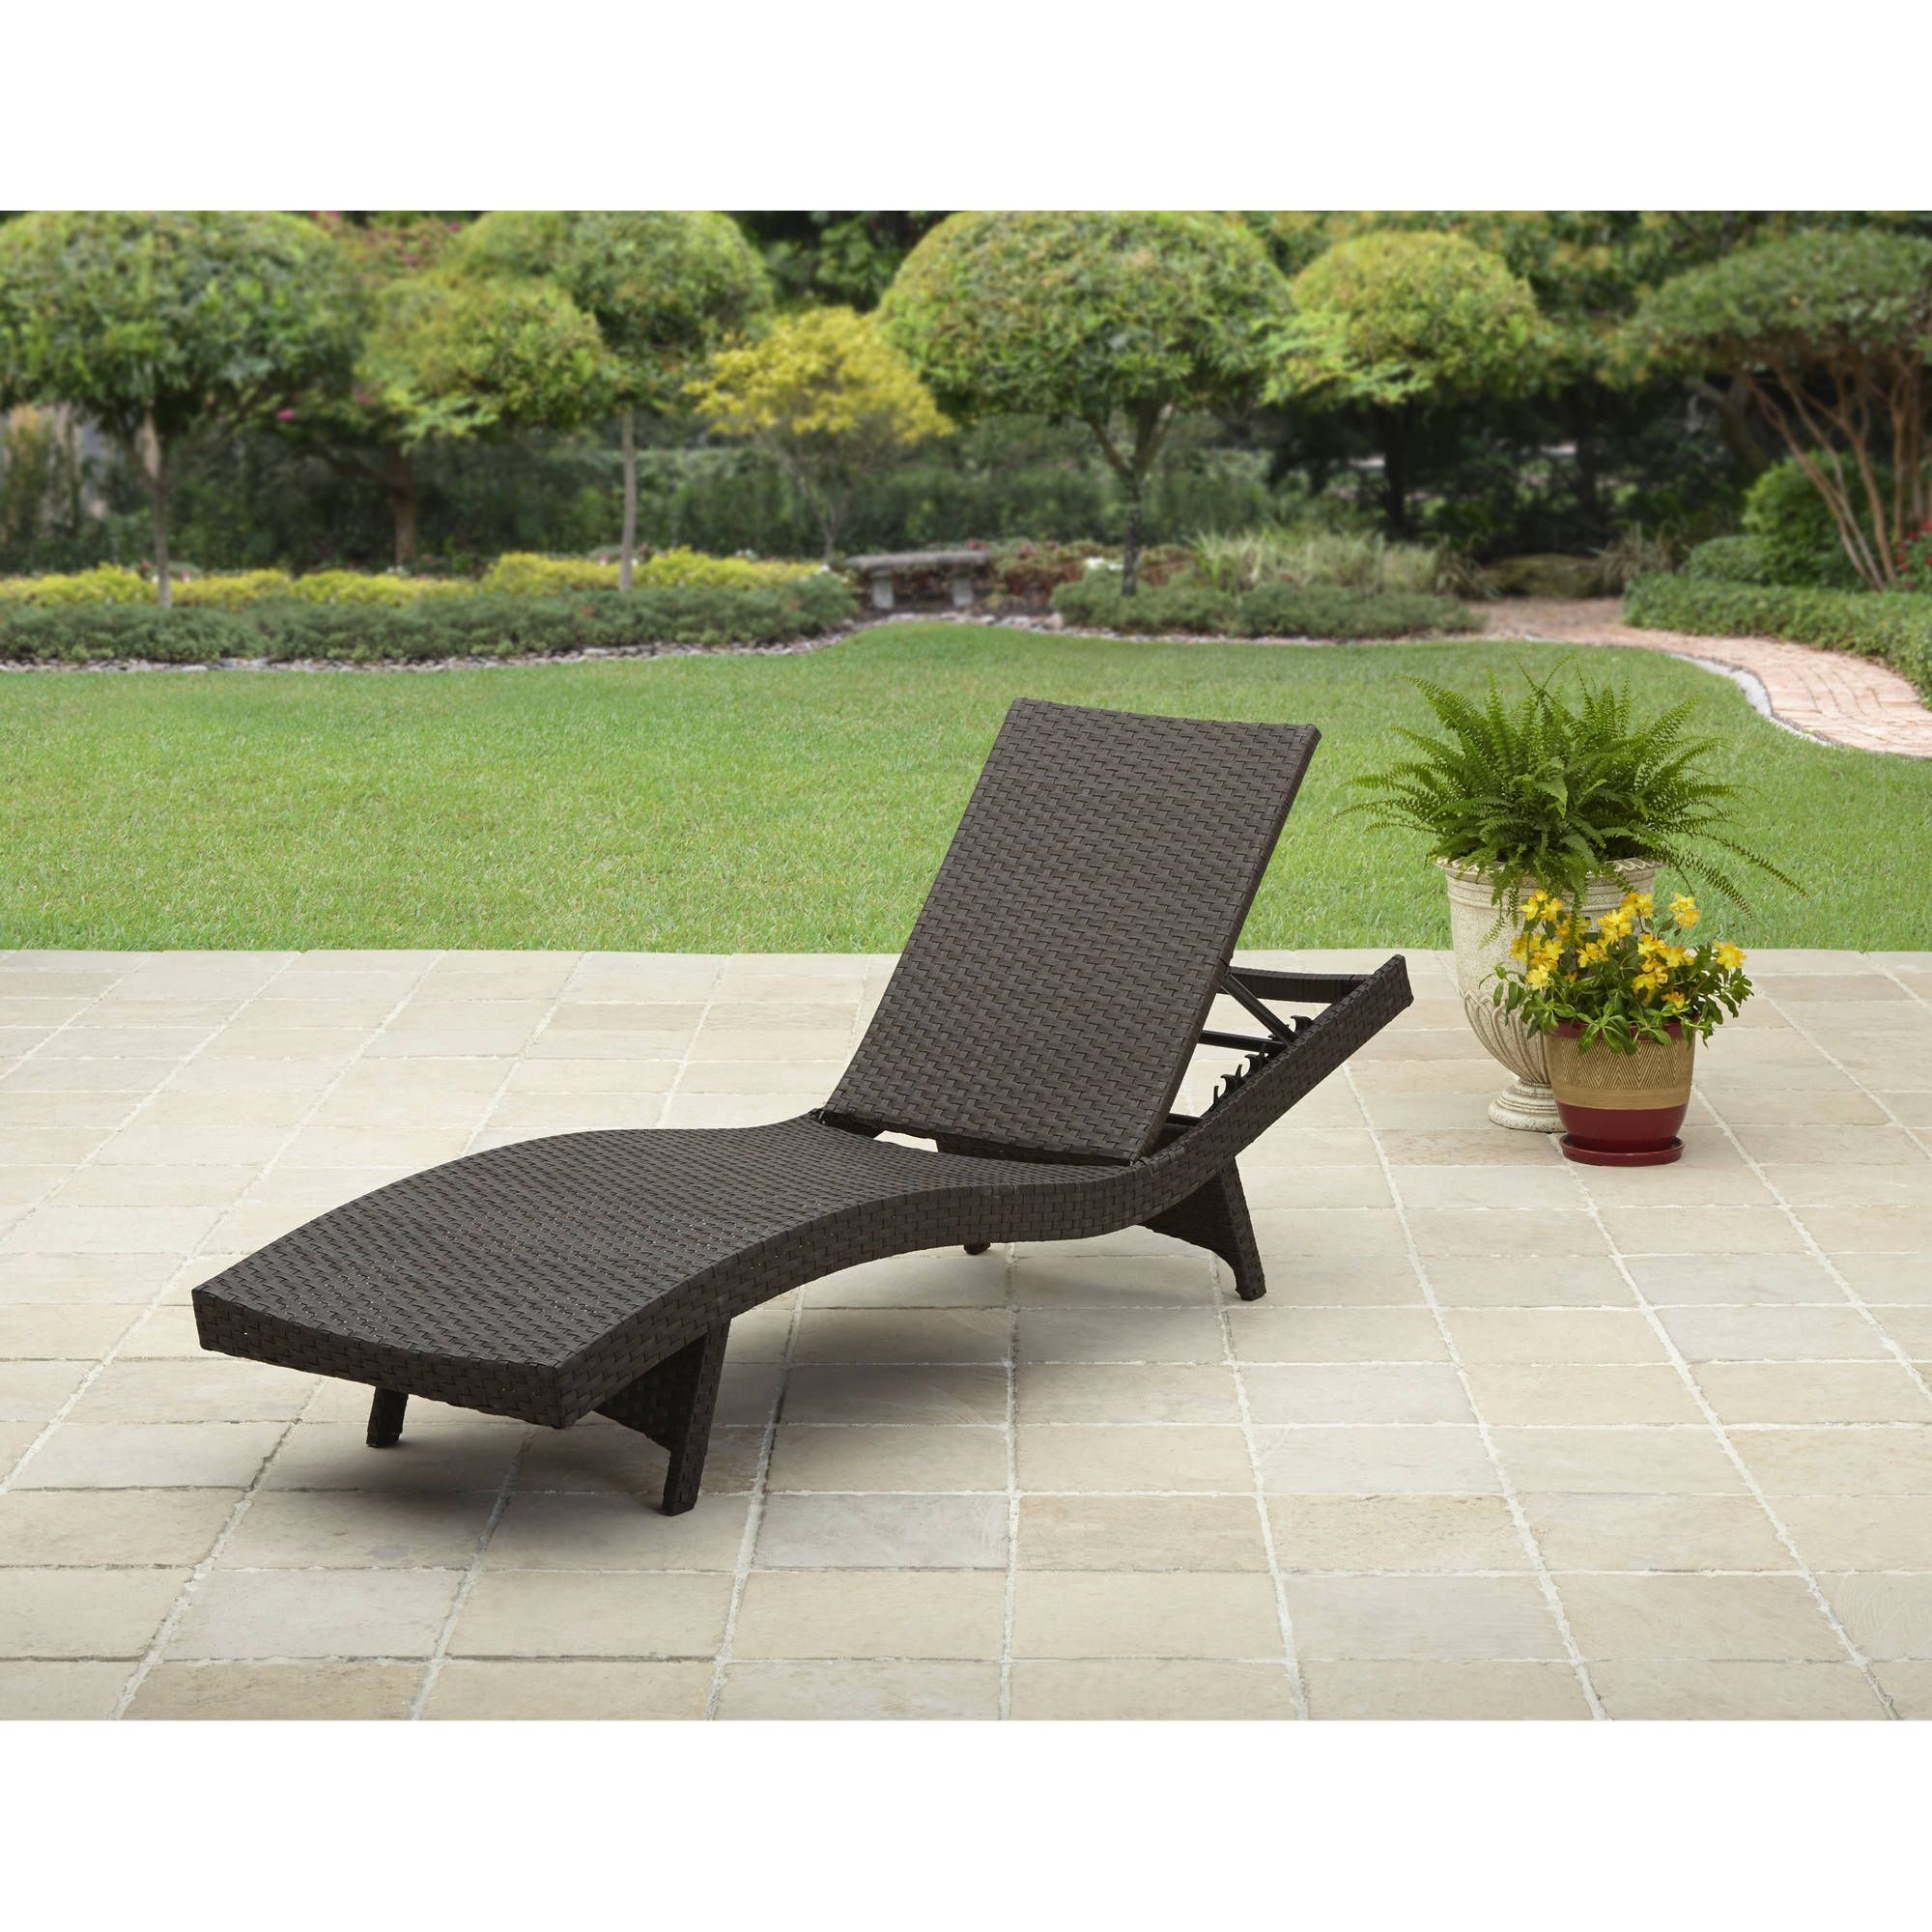 Outdoor Lounge Chairs For Small Spaces